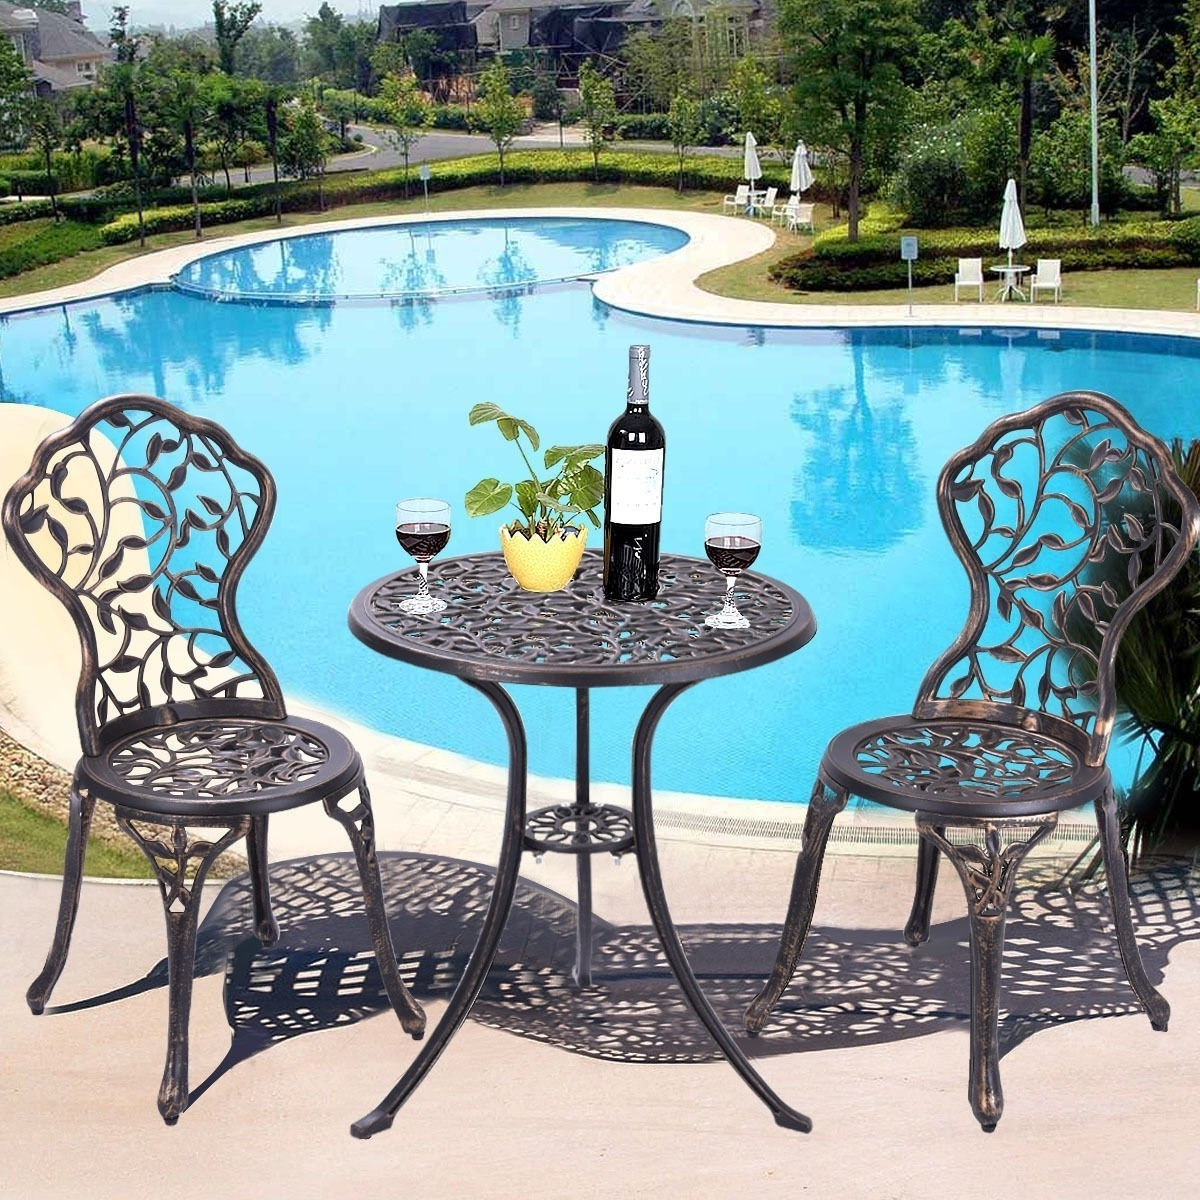 Recent Garten Storm Chairs With Espresso Finish Set Of 2 For Best Rated In Patio Furniture Sets & Helpful Customer Reviews (View 19 of 20)